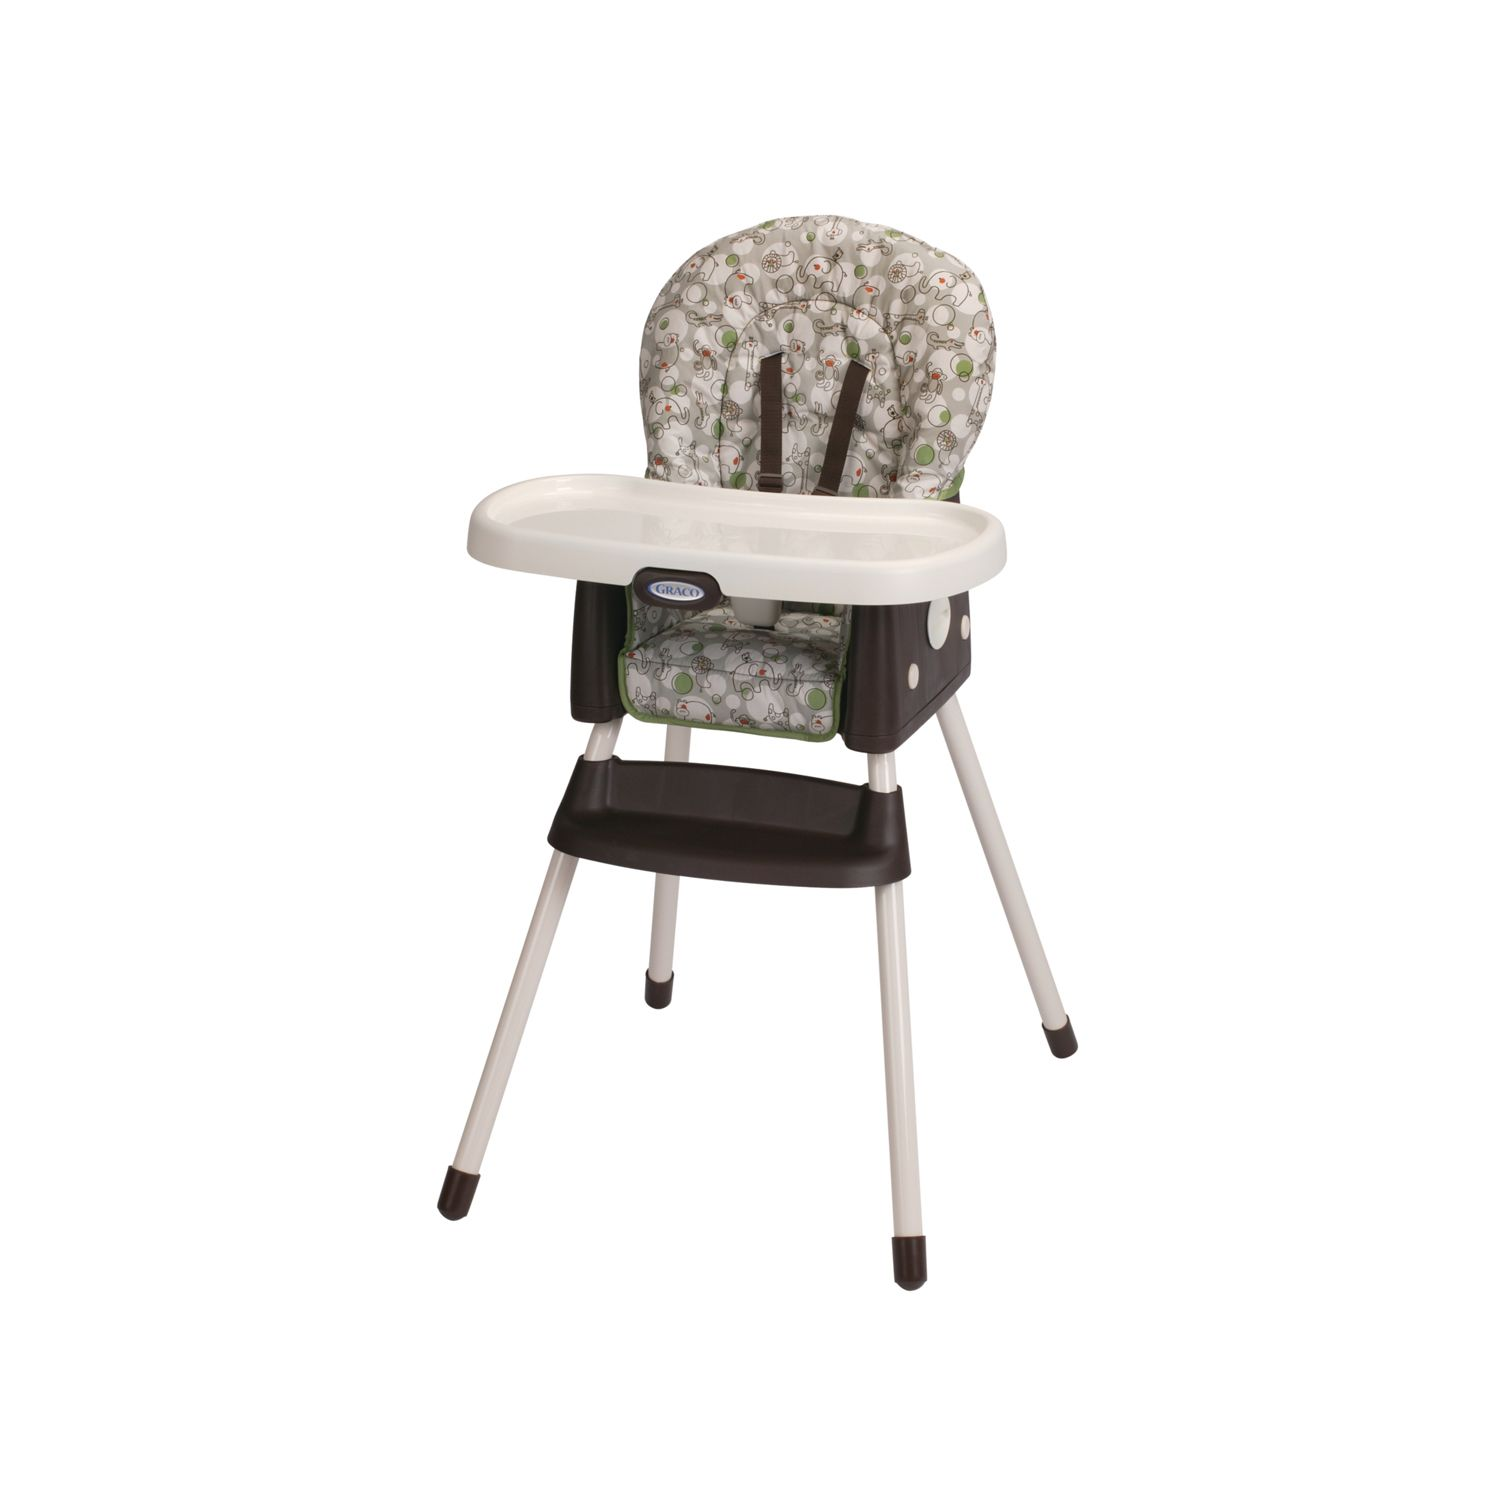 Wooden Booster High Chair Excellent High Chair Baby Booster